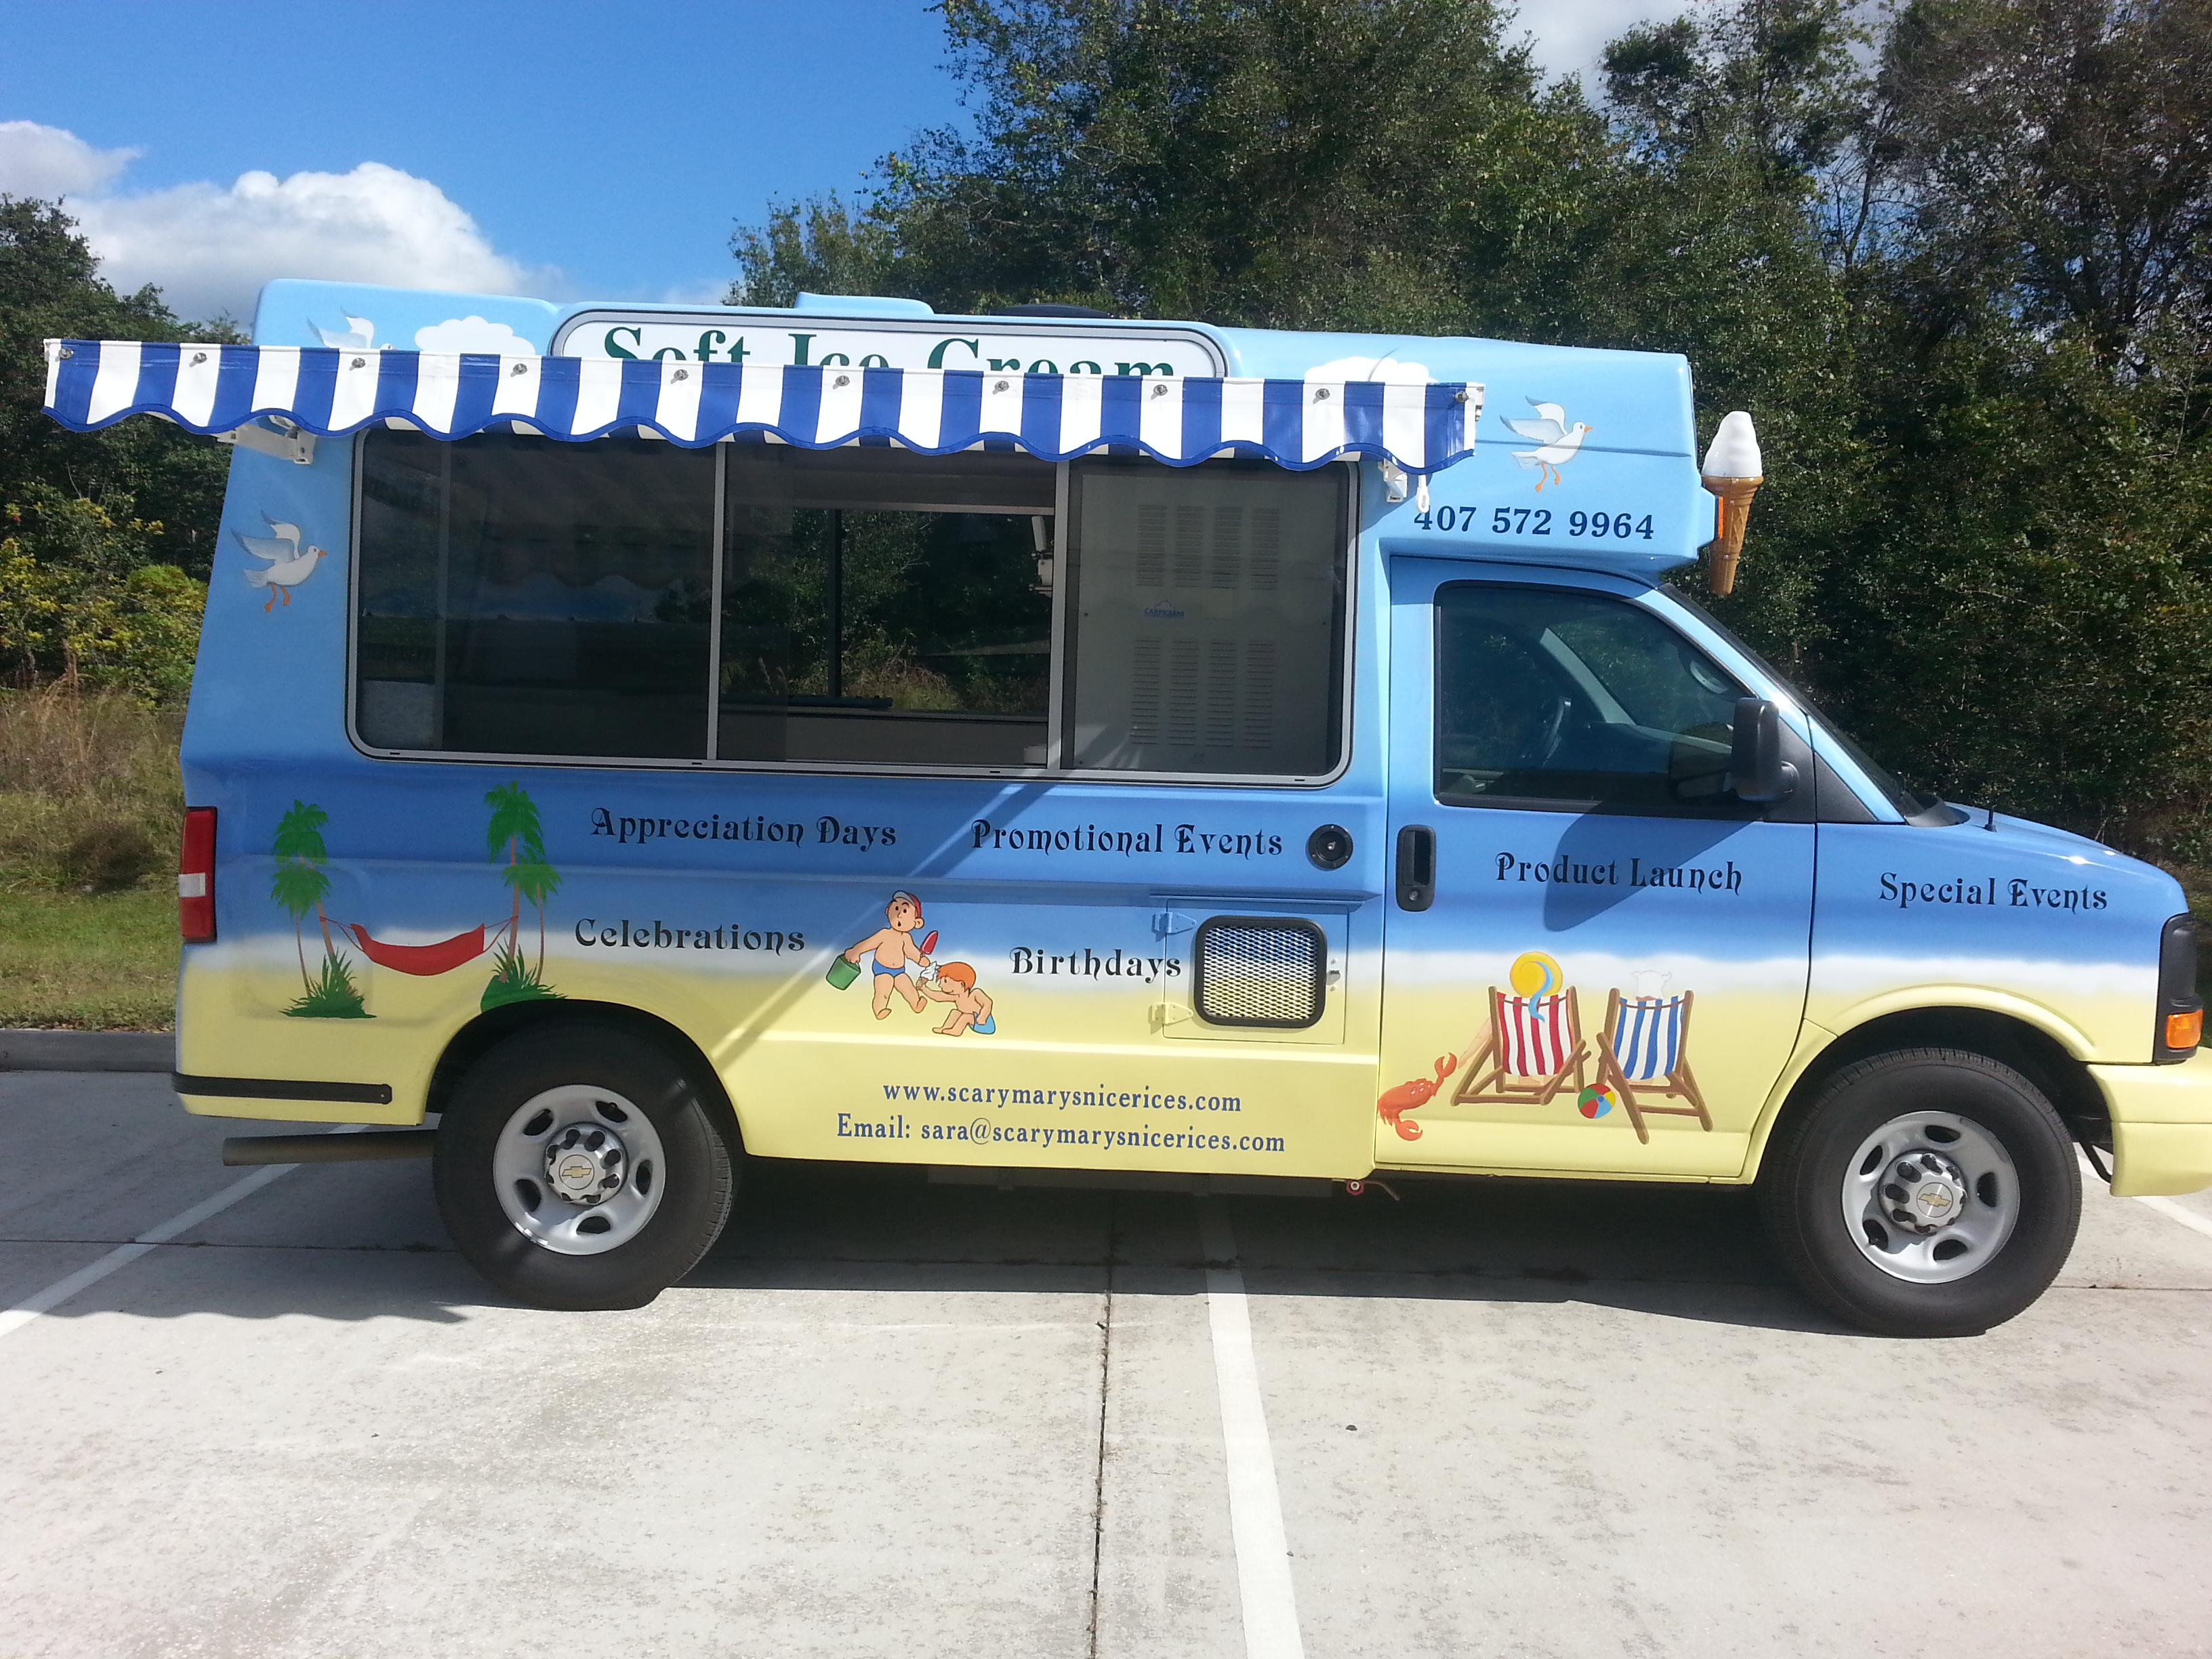 Tampa Area Food Trucks For Sale Tampa Bay Food Trucks